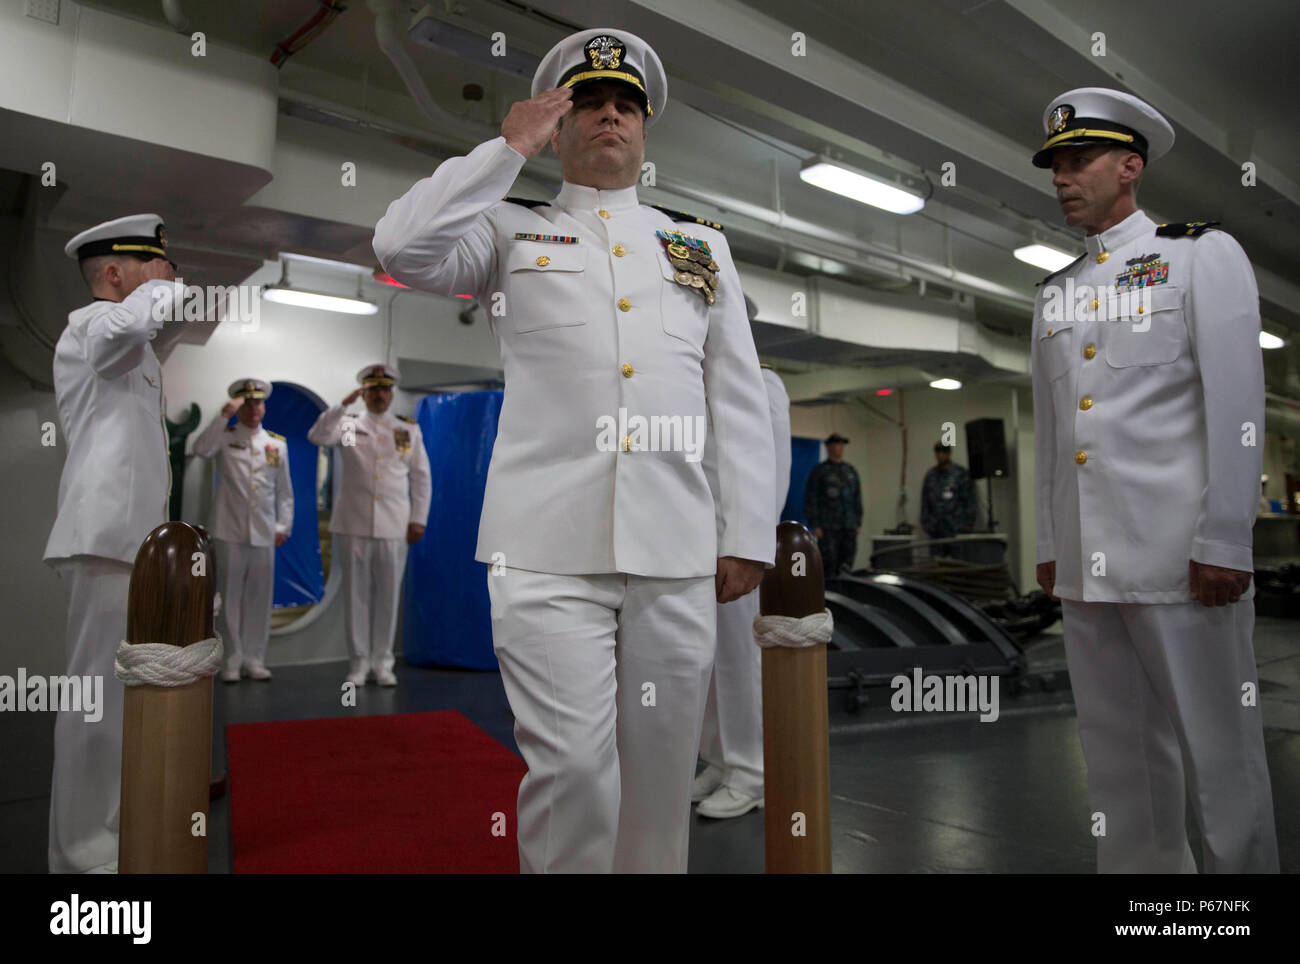 NEWPORT NEWS, Va. (May 13, 2016) -- Lt. Cmdr. Michael Stone, assigned to Pre-Commissioning Unit Gerald R. Ford (CVN 78), is rung aboard during his retirement ceremony in the ship's forecastle. Ford is the first of a new class of aircraft carriers currently under construction by Huntington Ingalls Industries Newport News Shipbuilding. (U.S. Navy photo by Mass Communication Specialist Seaman Apprentice Connor Loessin/Released) - Stock Image